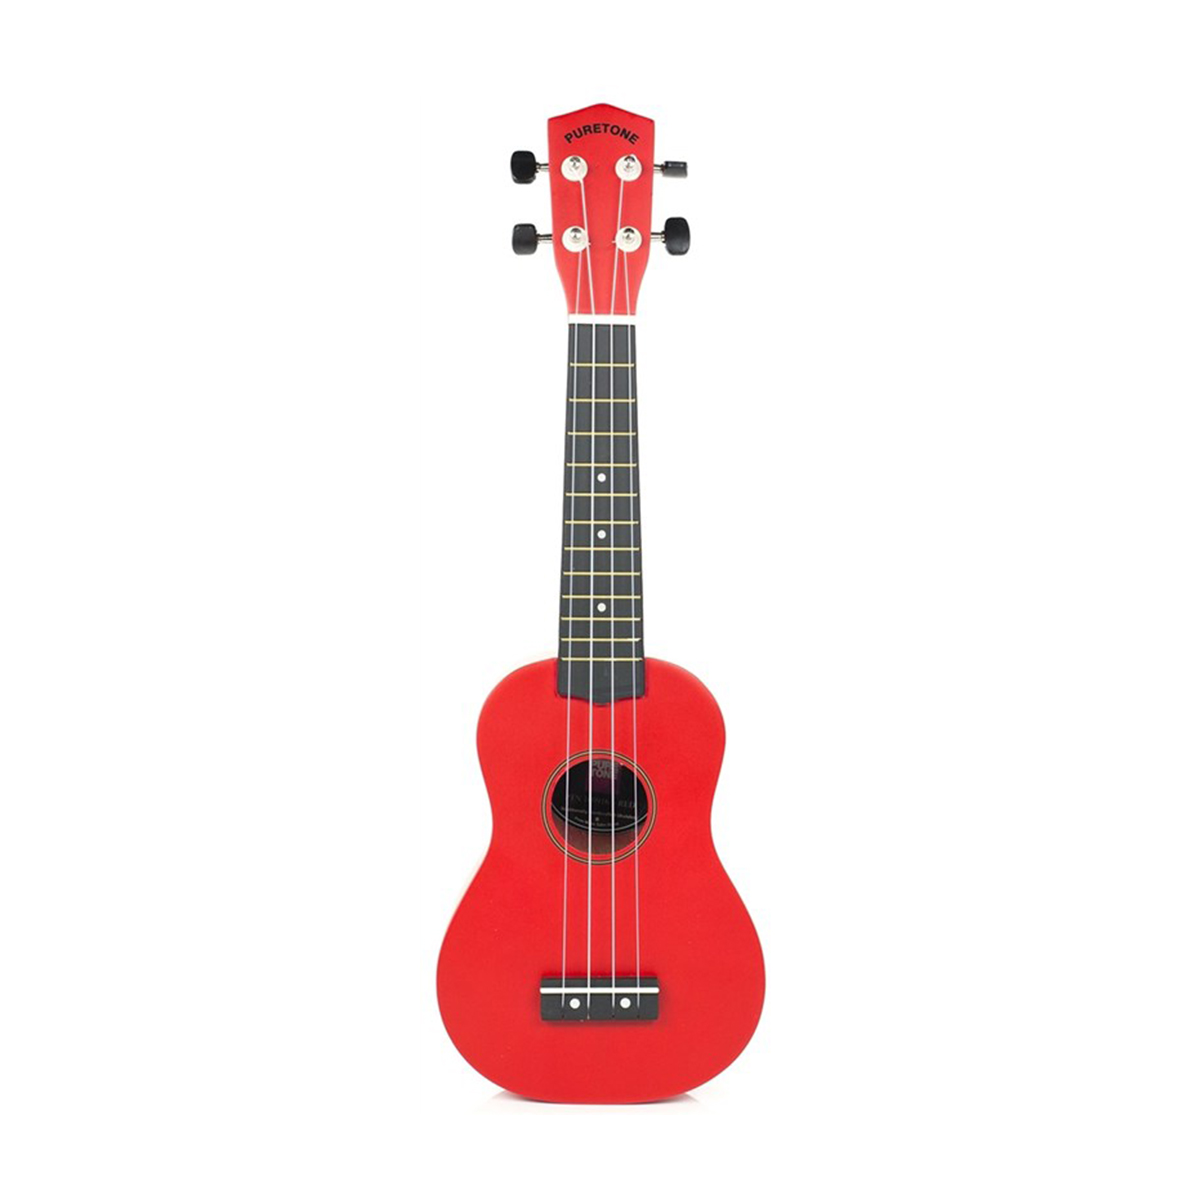 Pure Tone Ukulele Pack Red